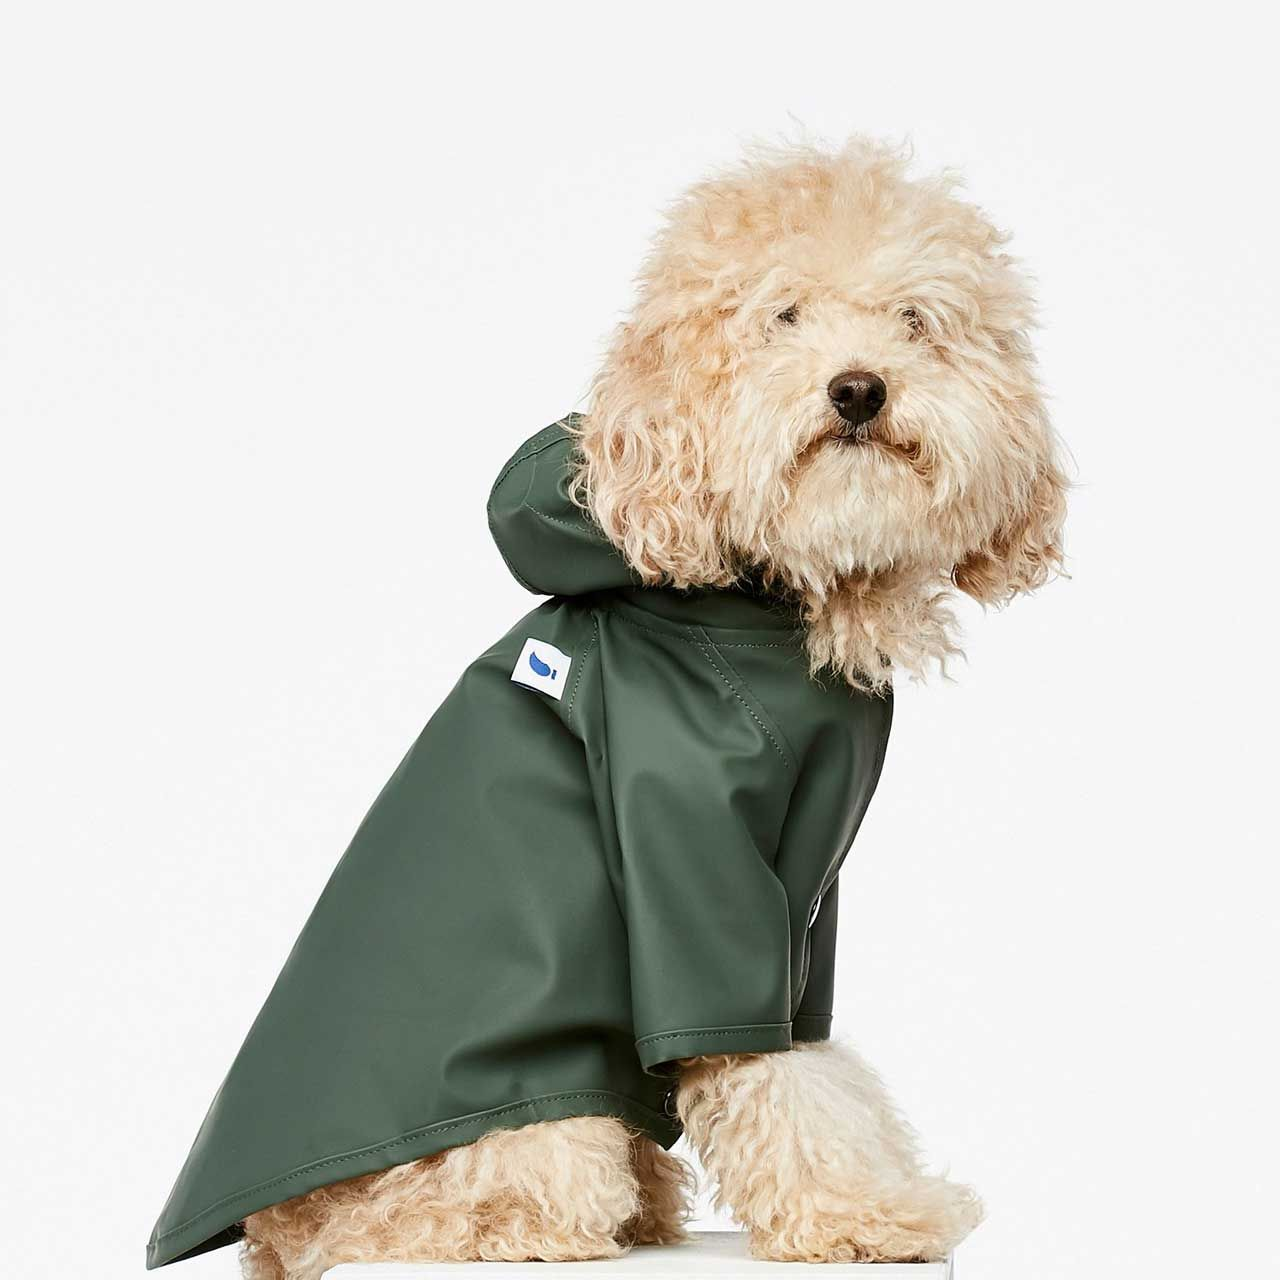 Stylish Outerwear For Dogs From The Painter S Wife Dog Coats Dog Raincoat Stylish Dogs [ 1280 x 1280 Pixel ]